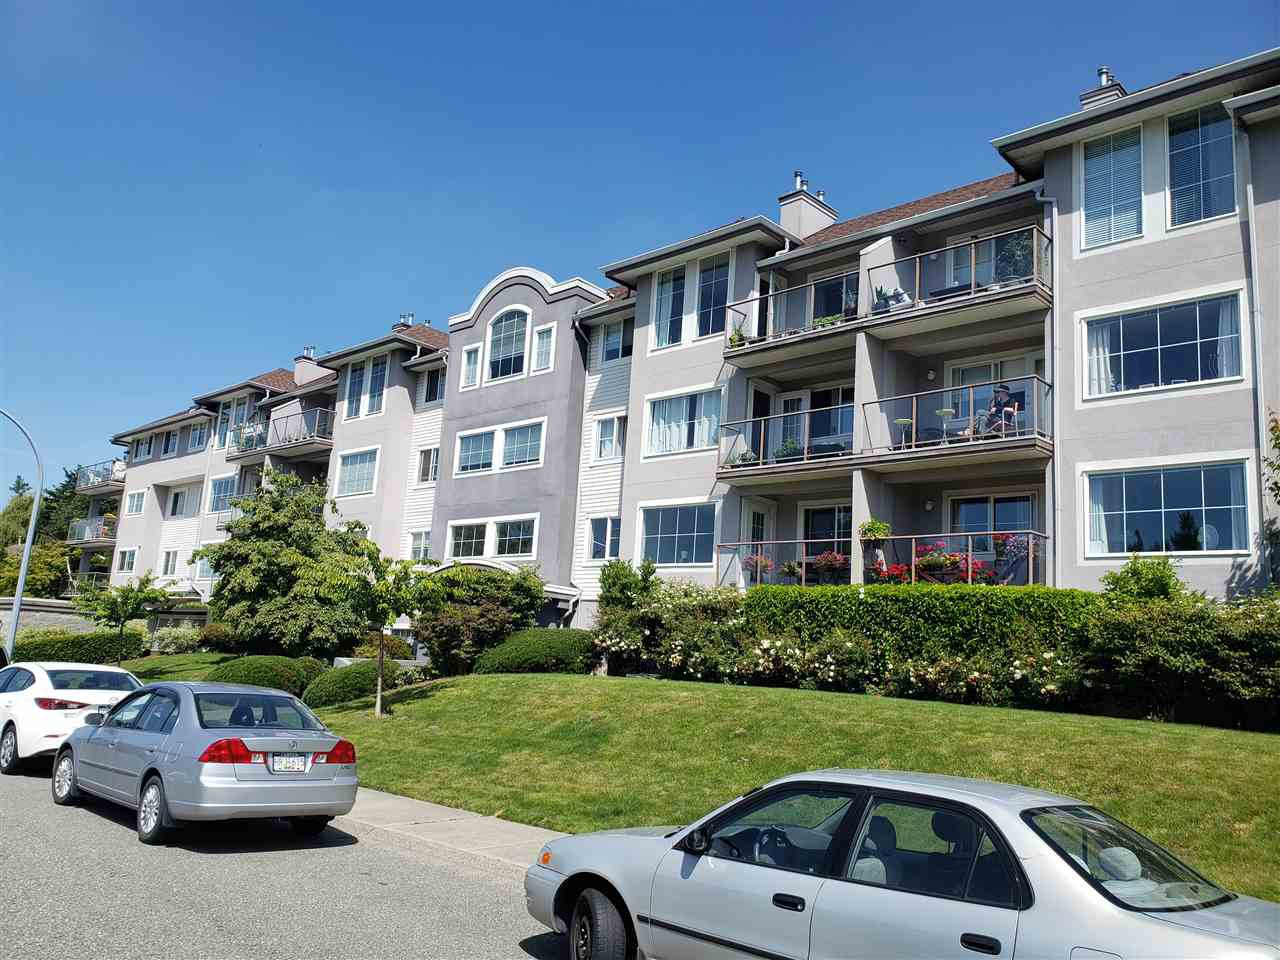 """Main Photo: 311 33599 2ND Avenue in Mission: Mission BC Condo for sale in """"STAVE LAKE LANDING"""" : MLS®# R2476170"""